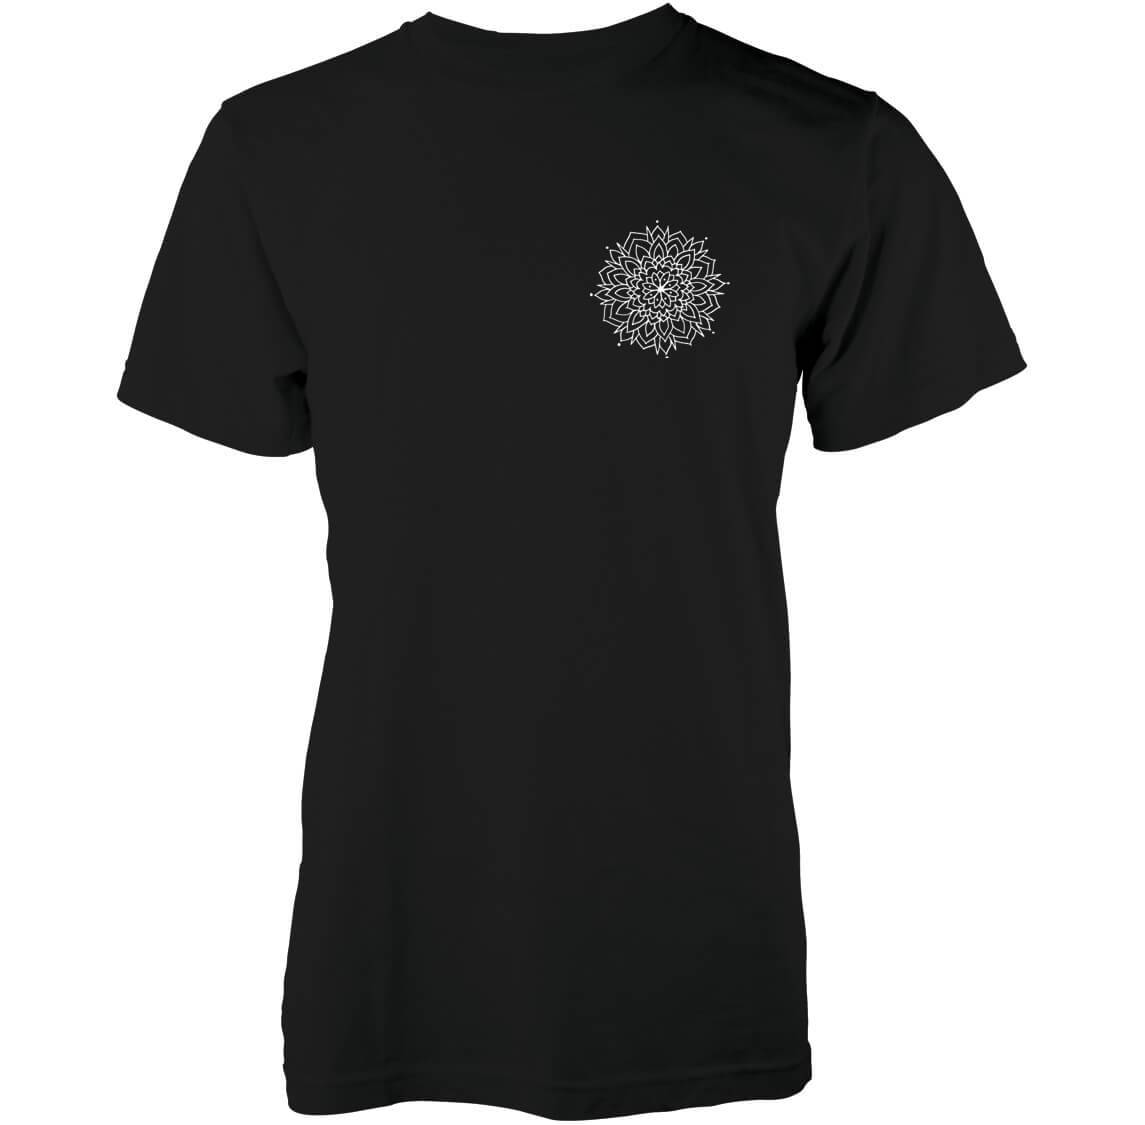 Abandon Ship Men's Snow Mandala T-Shirt - Black - XL - Black